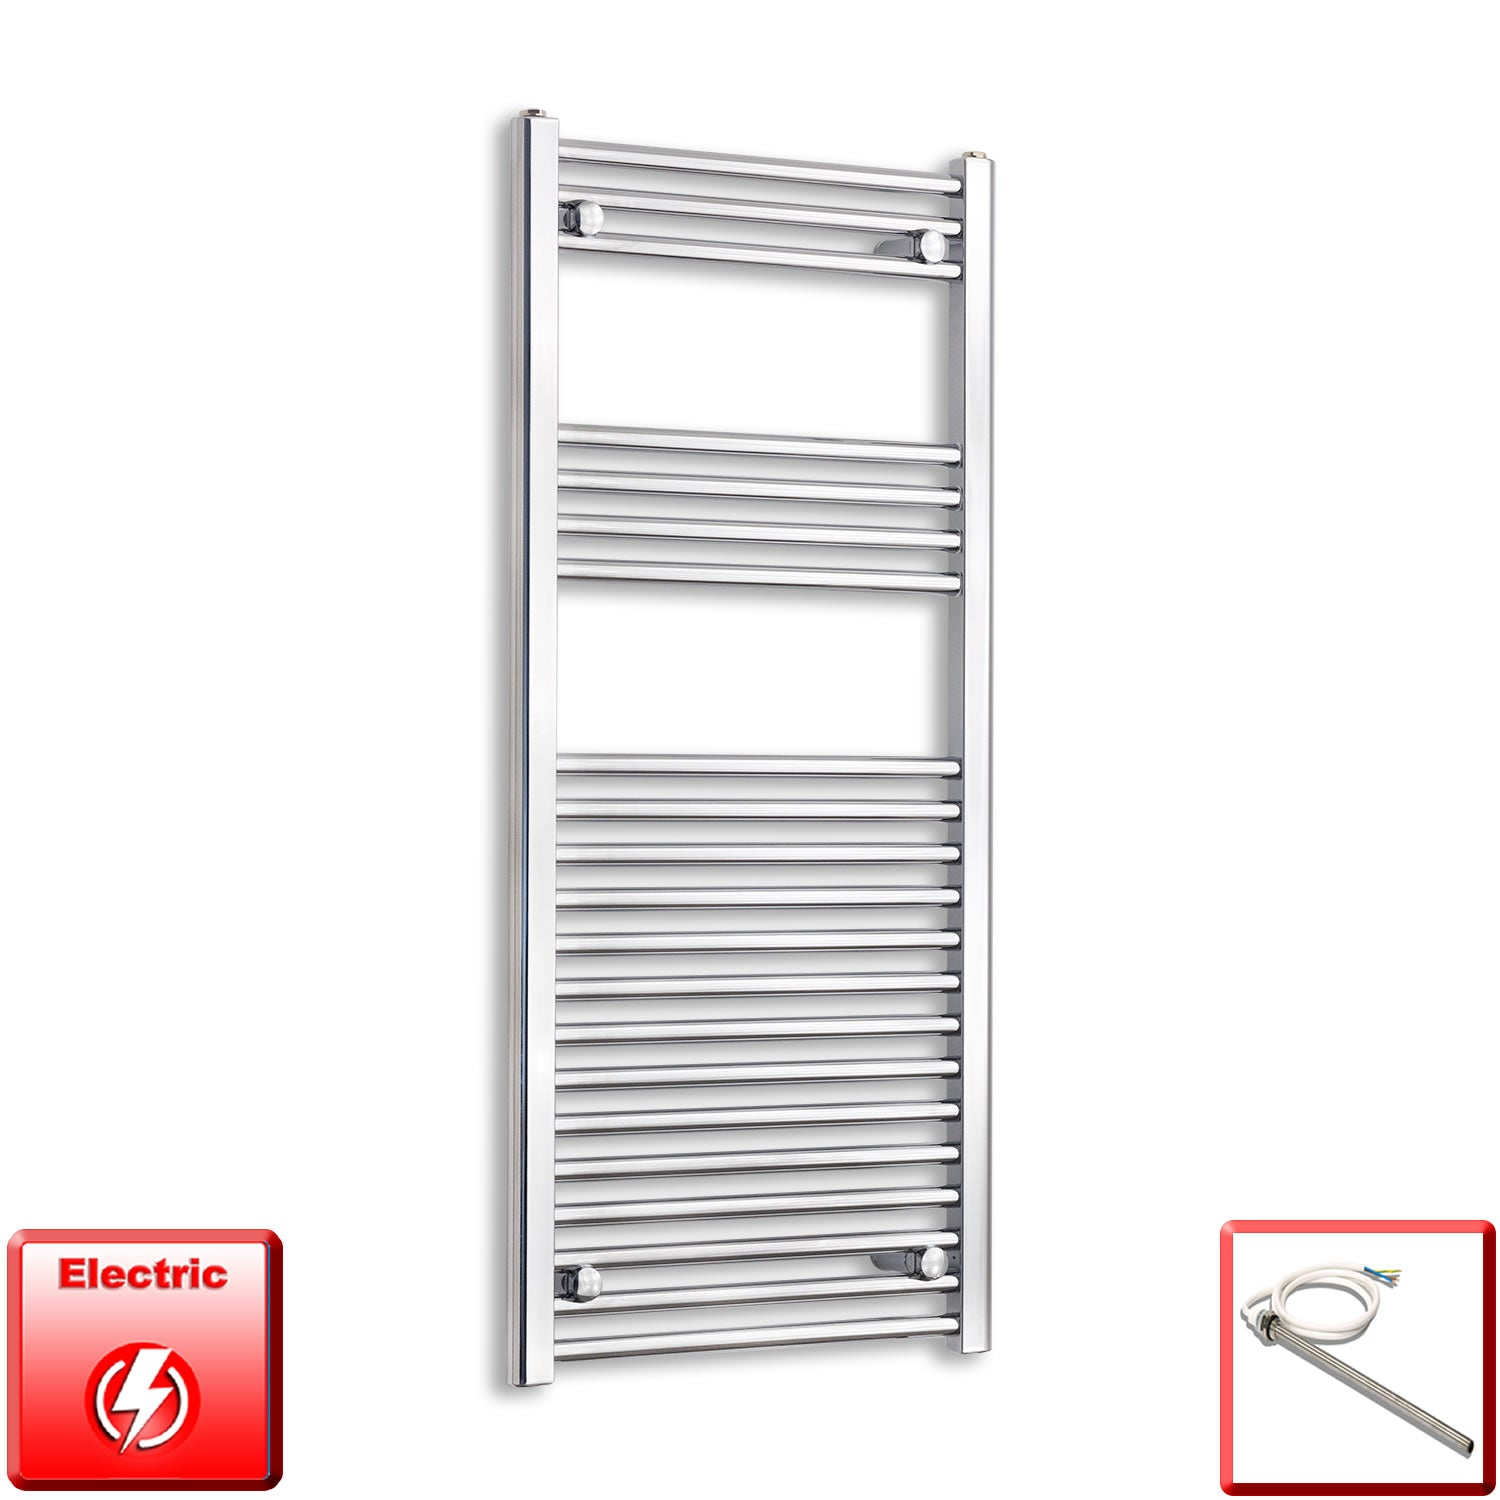 600mm Wide 1100mm High Pre-Filled Chrome Electric Towel Rail Radiator With Single Heat Element